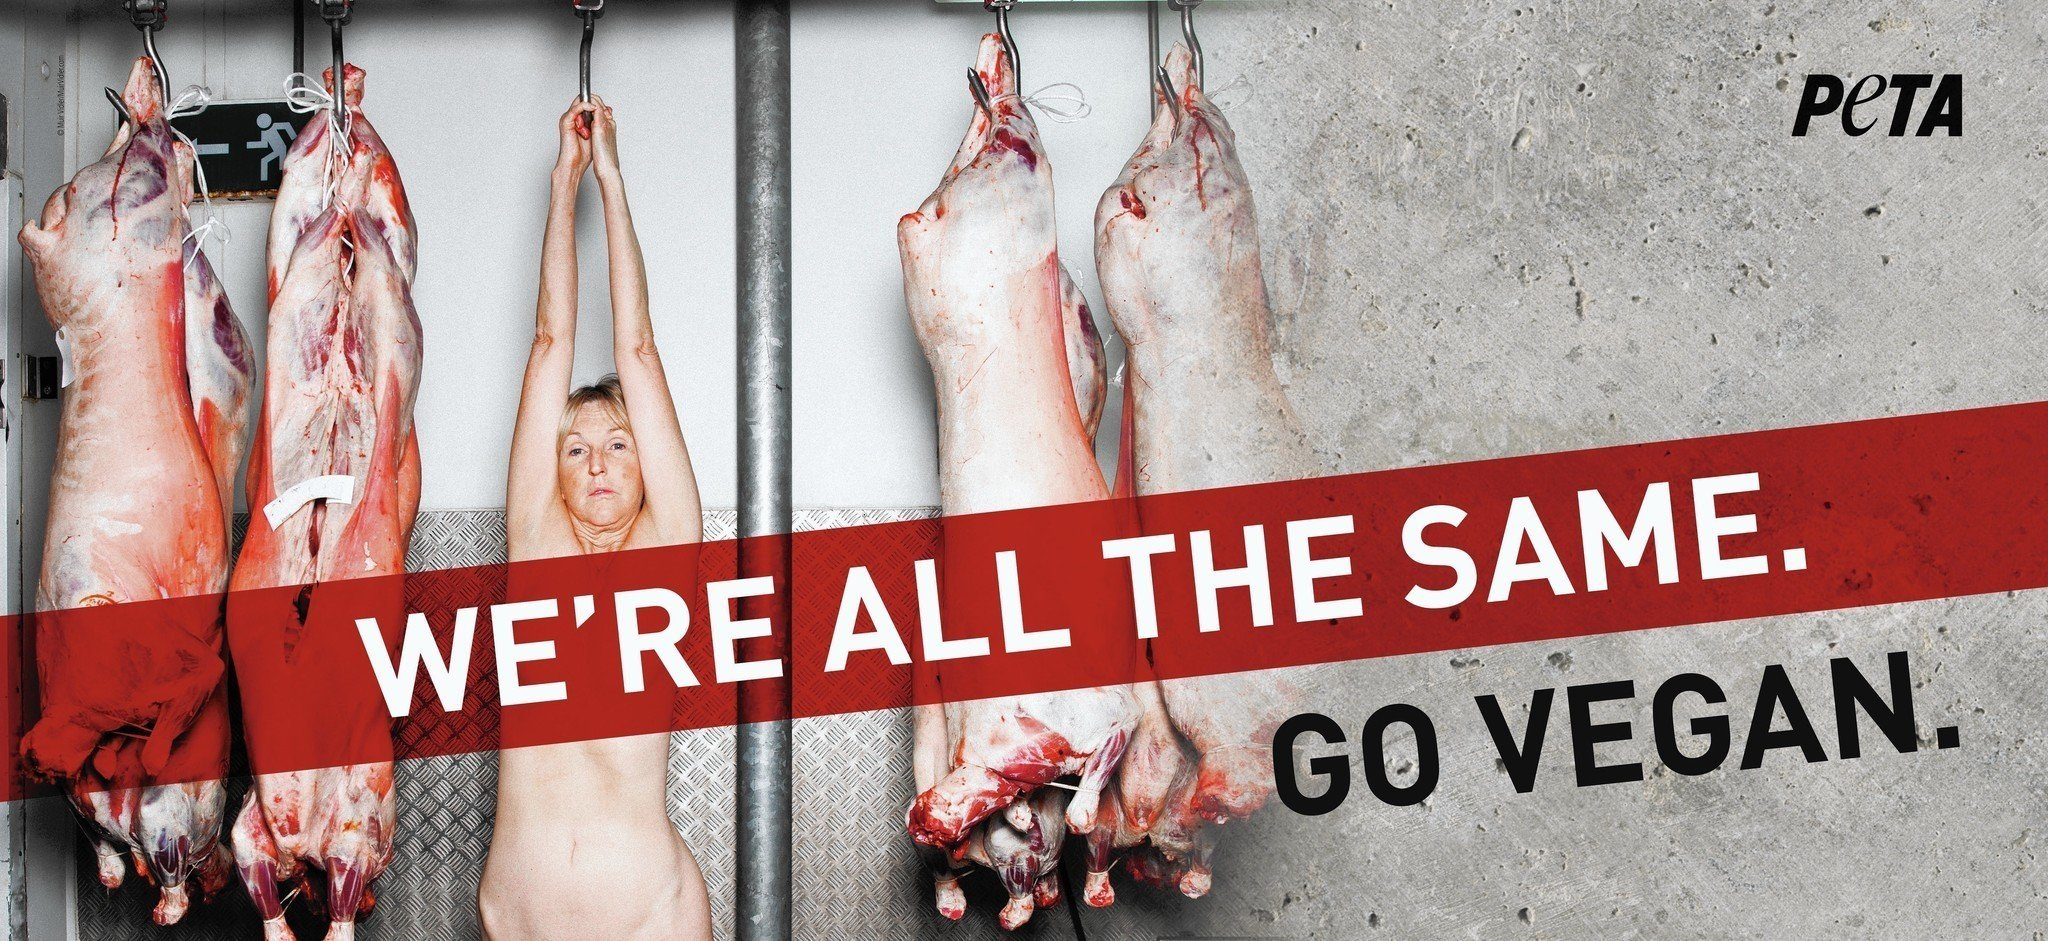 The naked truth – we've seen it all before PETA!